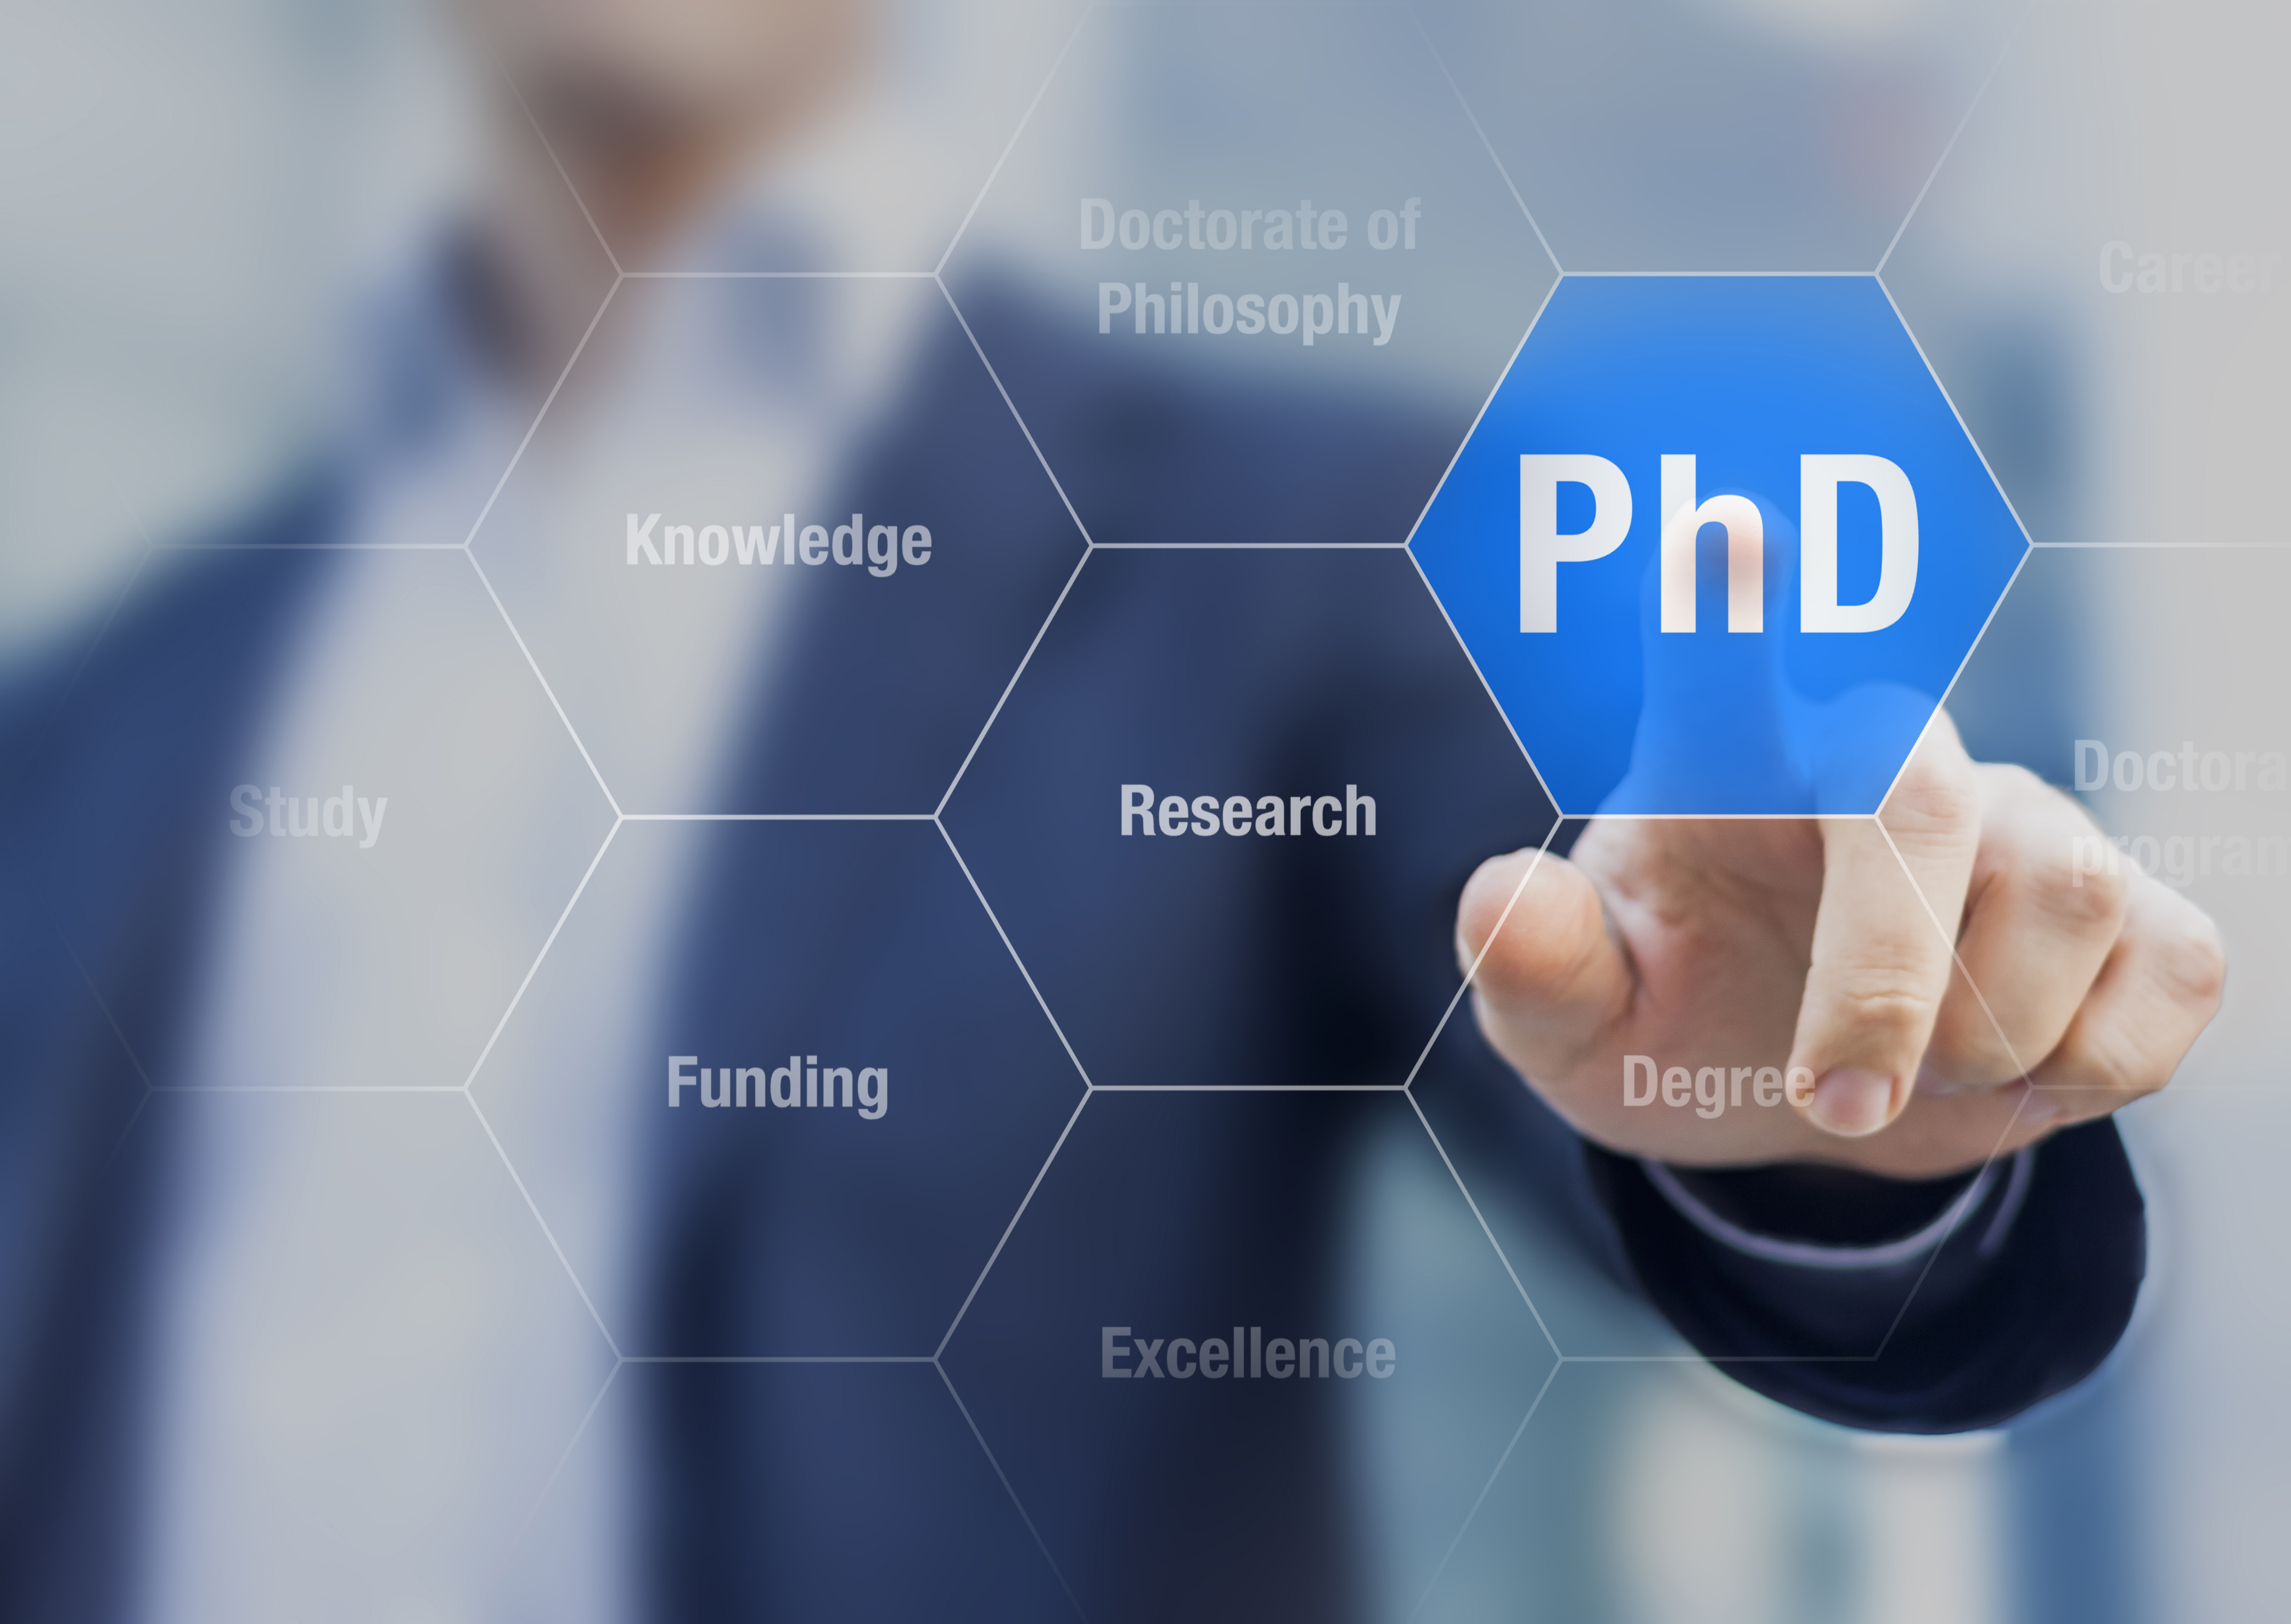 AACN Seeks Feedback on the New Position Statement on the Research-Focused Doctorate